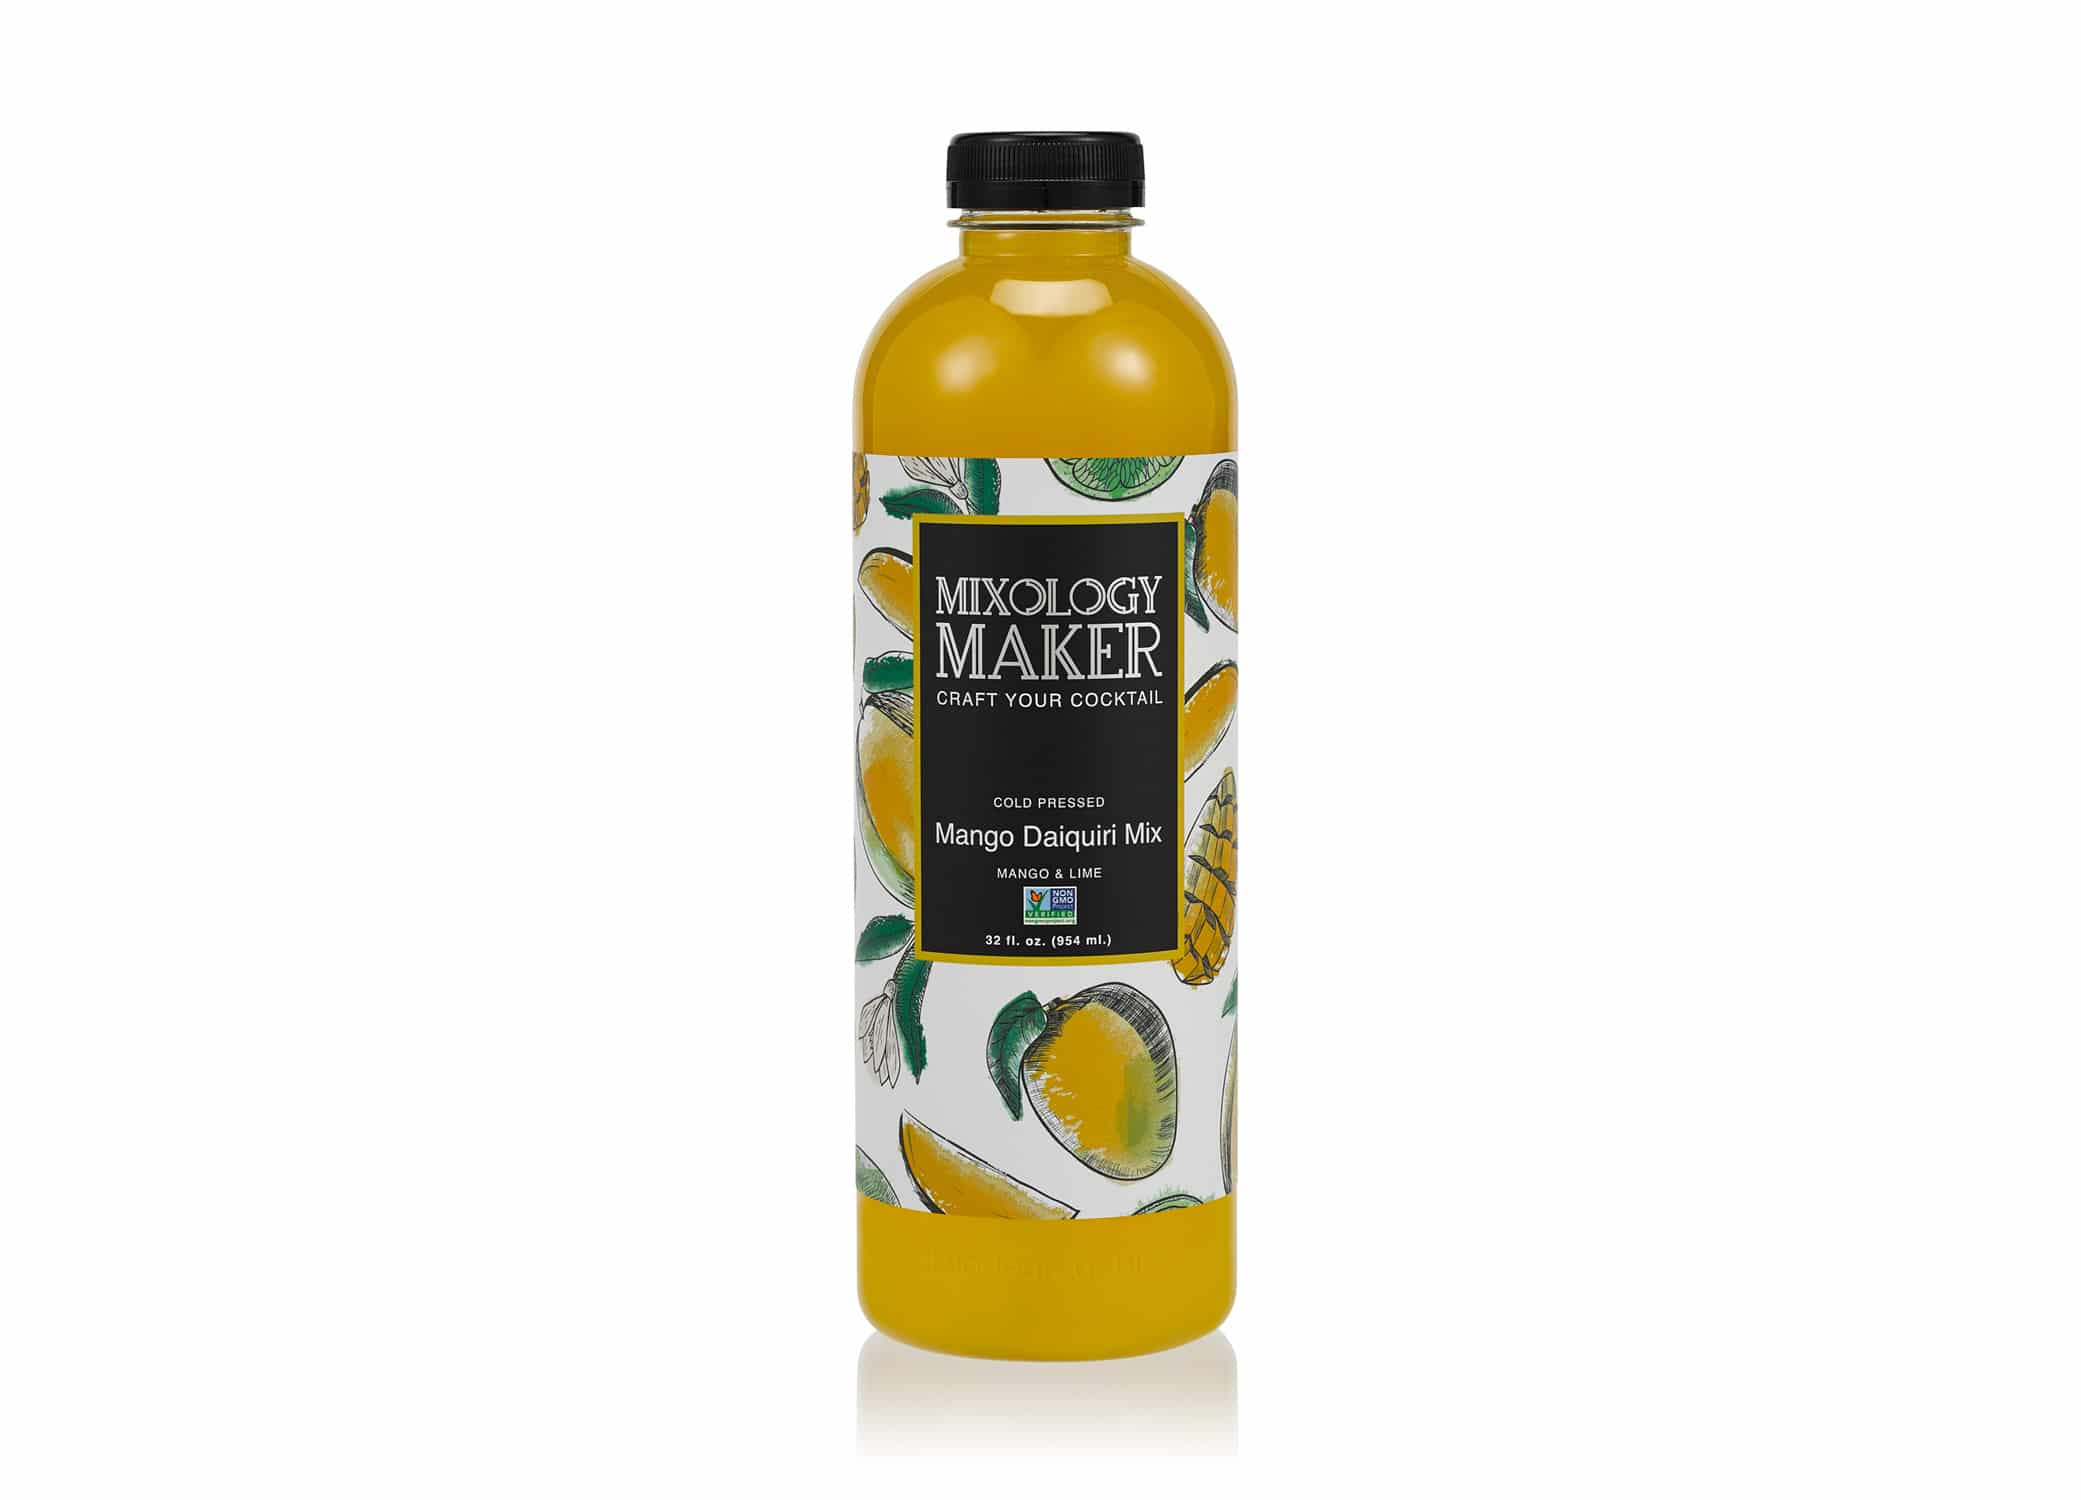 Mixology Maker drink packaging design showing Mango Daiquiri flavor with sleek logo and hand drawn fruits on the label.